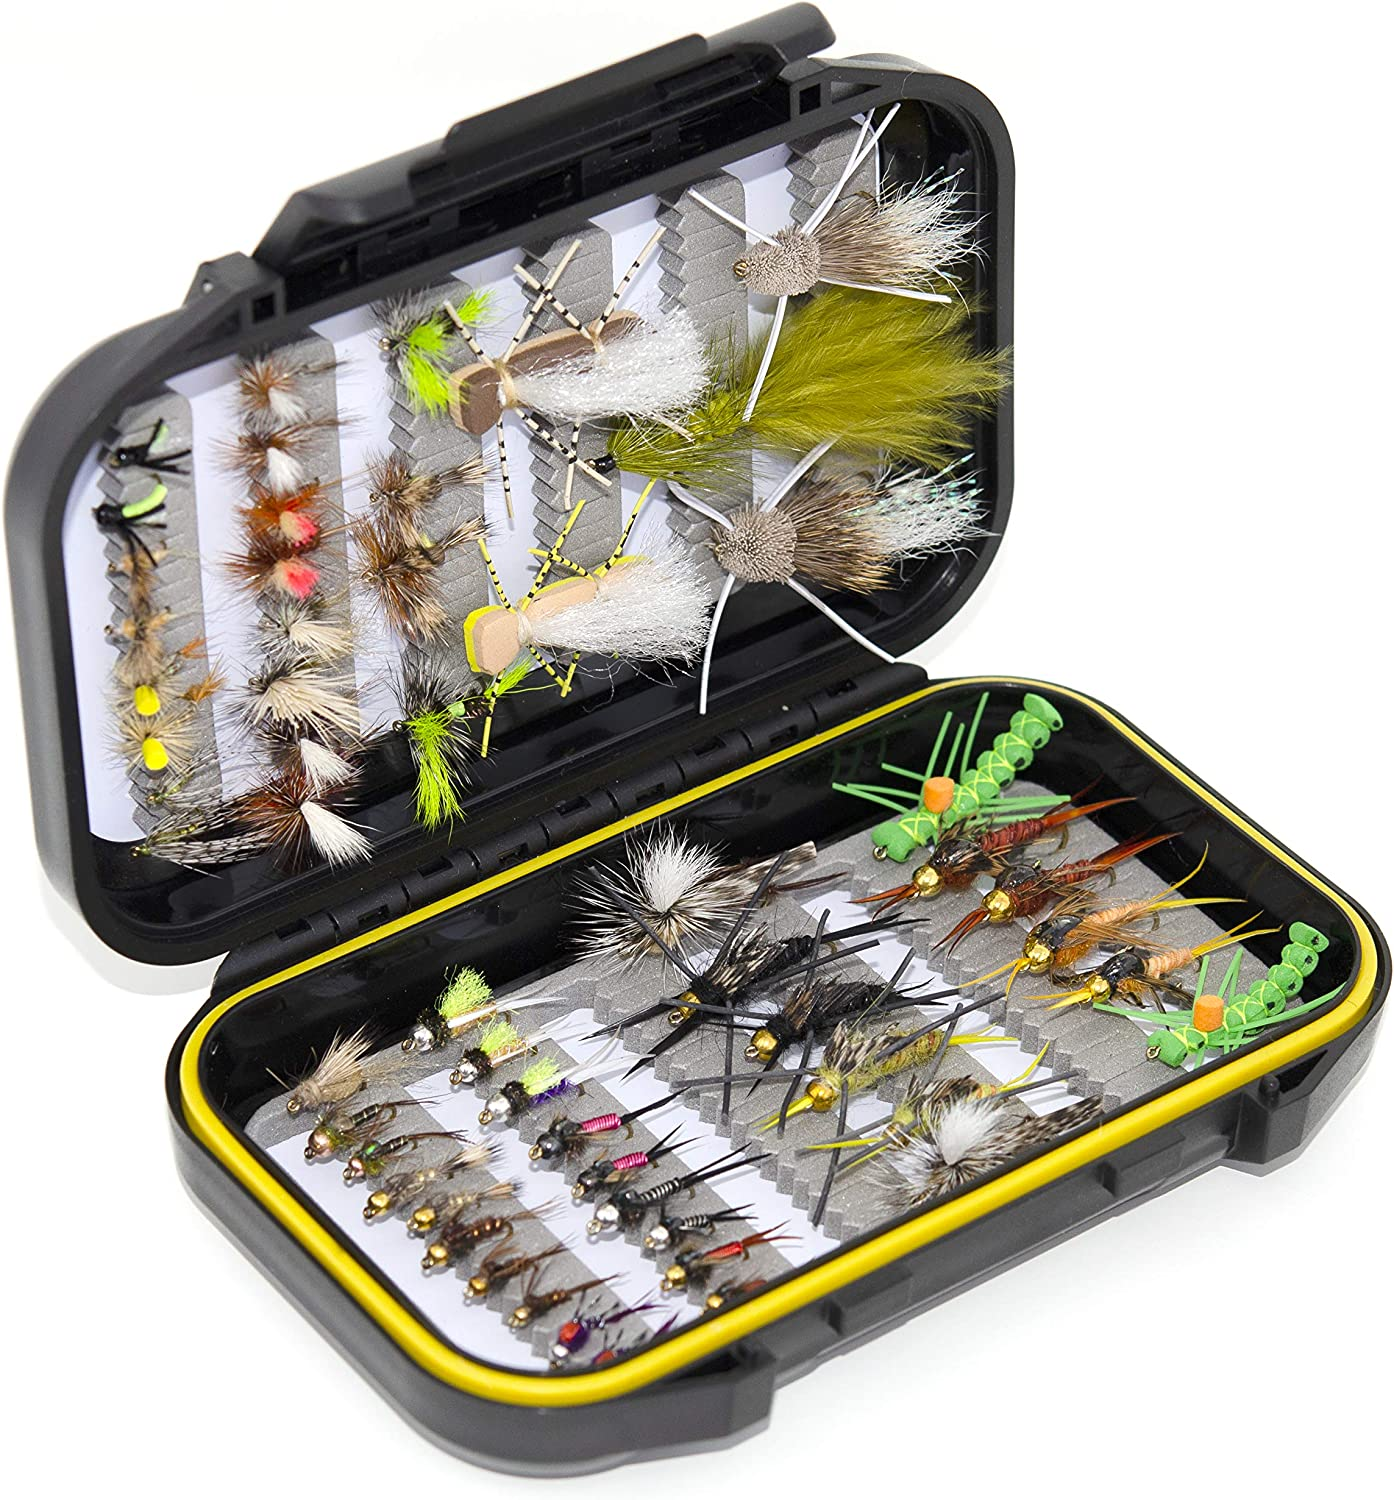 56 Assorted Trout Fly Kit Inventory cleanup selling sale Waterproof High order Flies Fishing